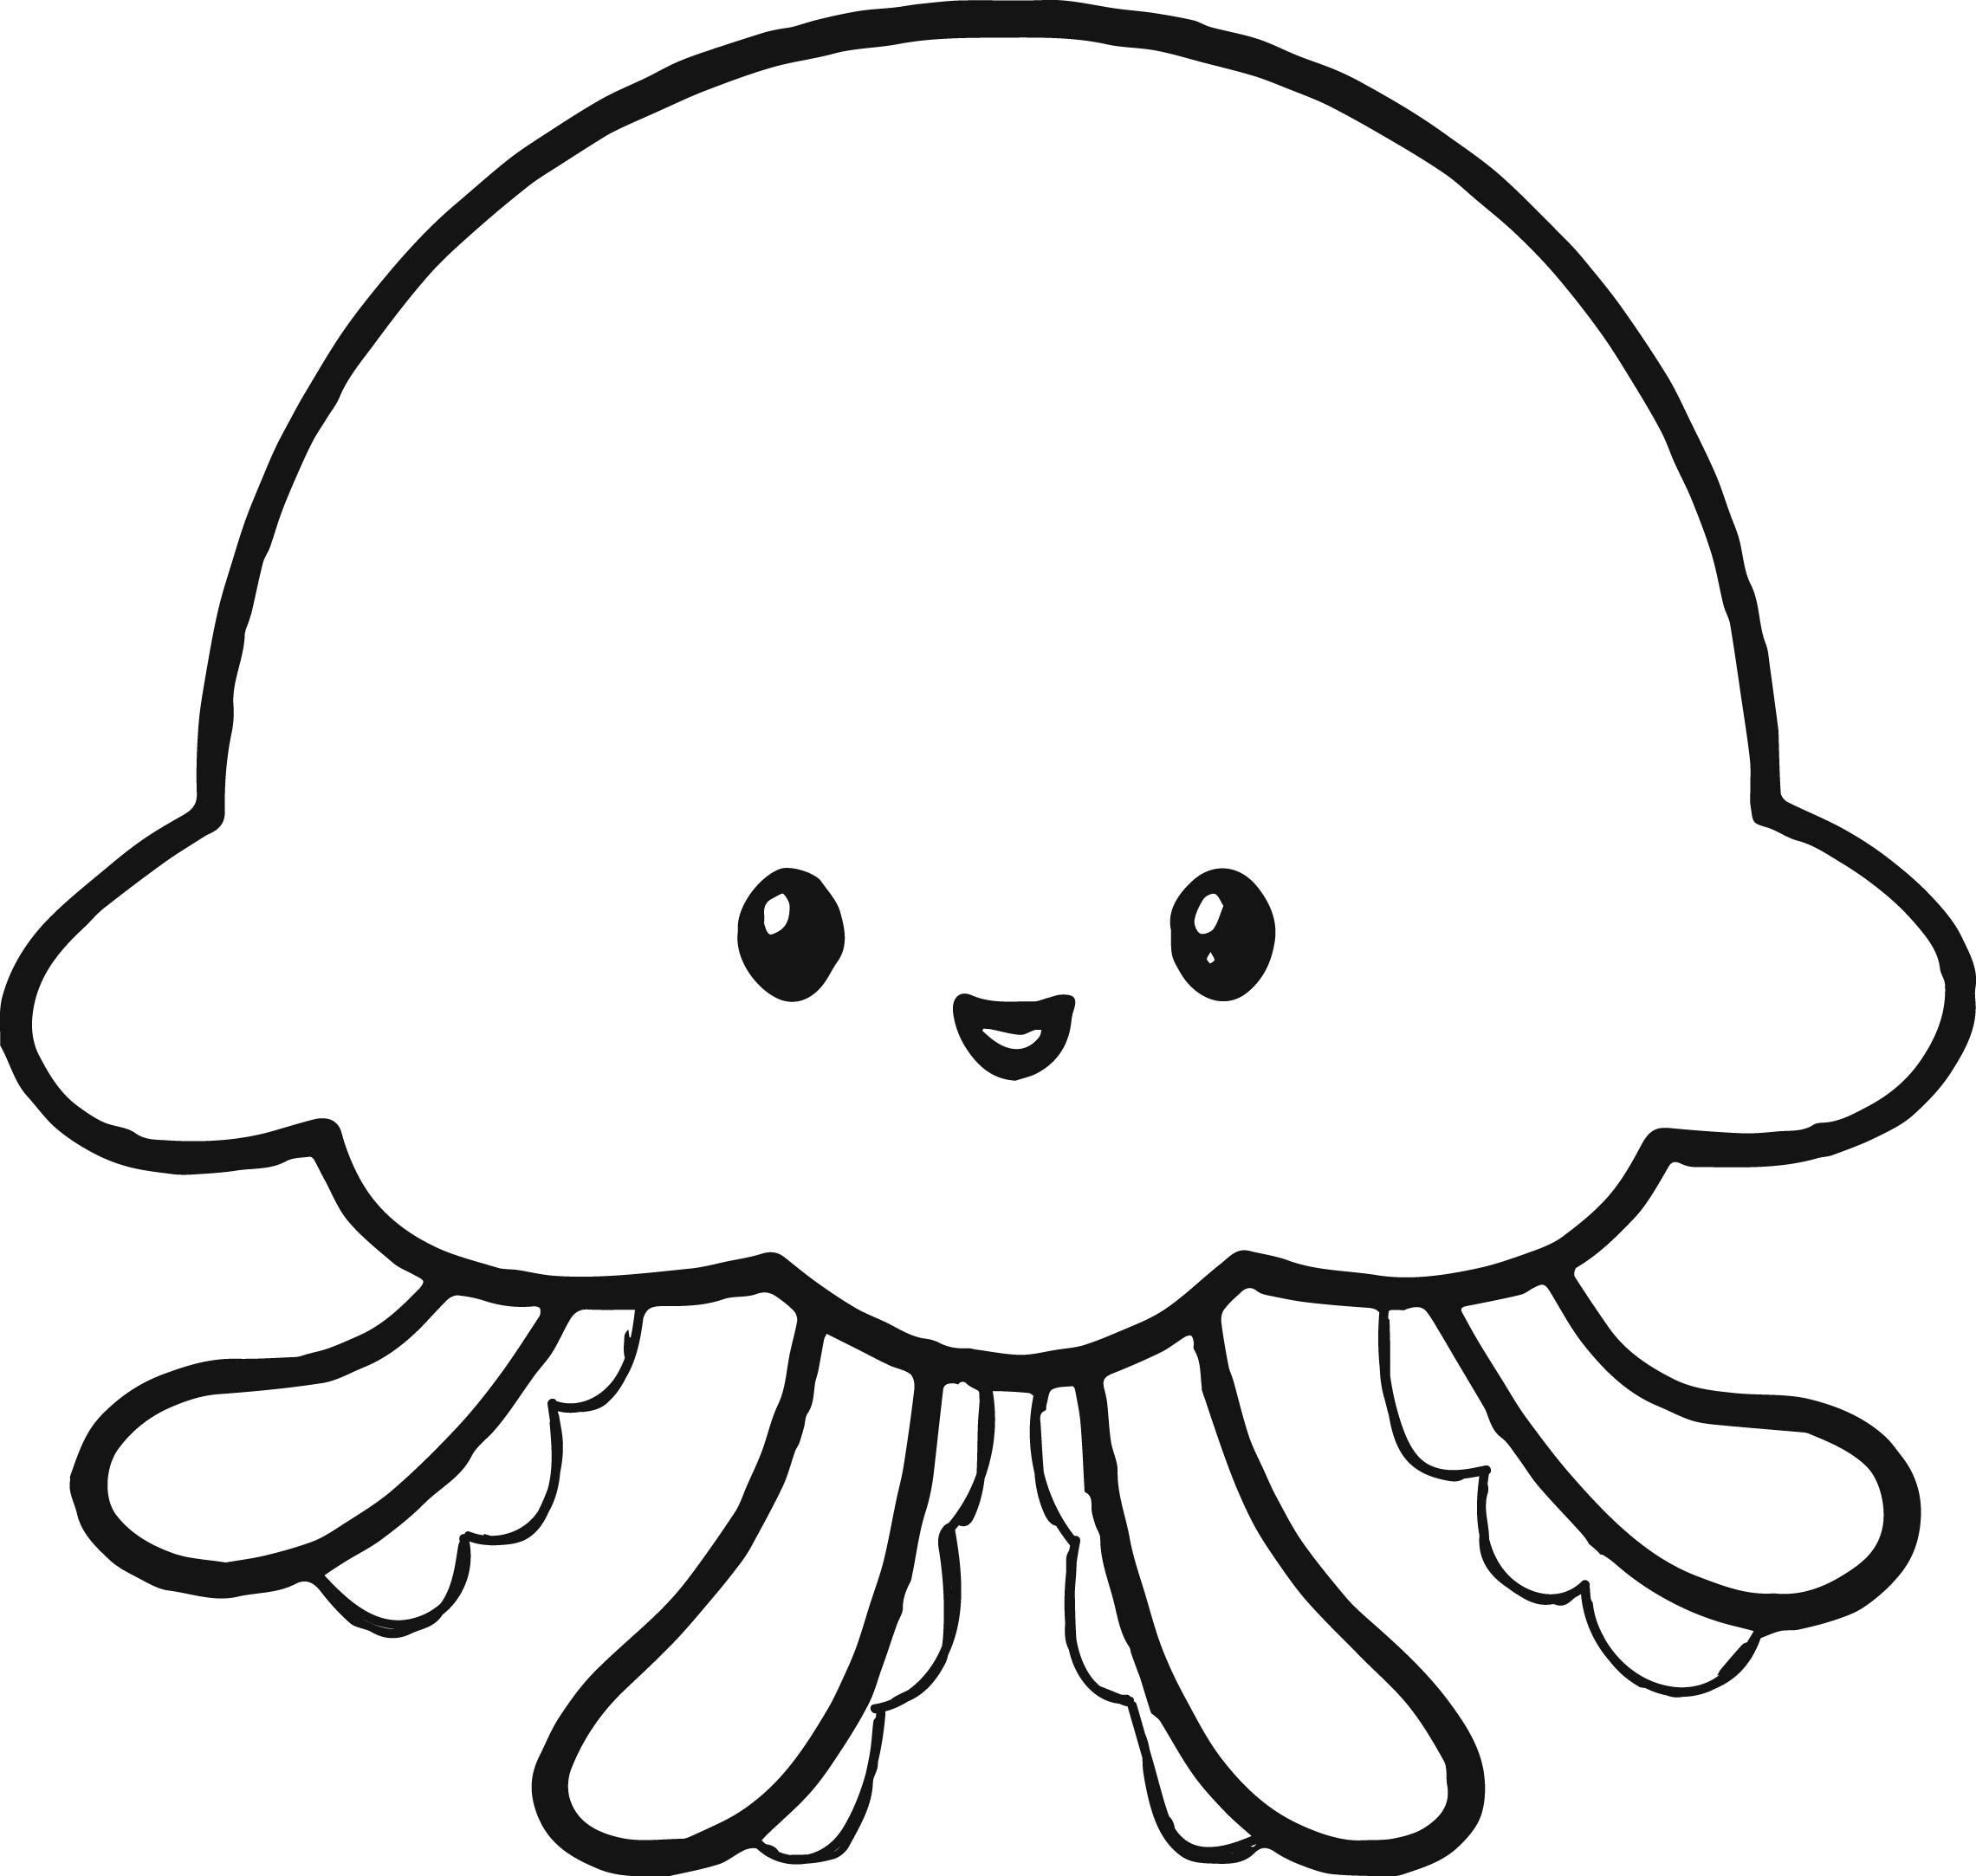 simple jellyfish drawing image result for symmetrical jellyfish drawing jellyfish jellyfish drawing simple